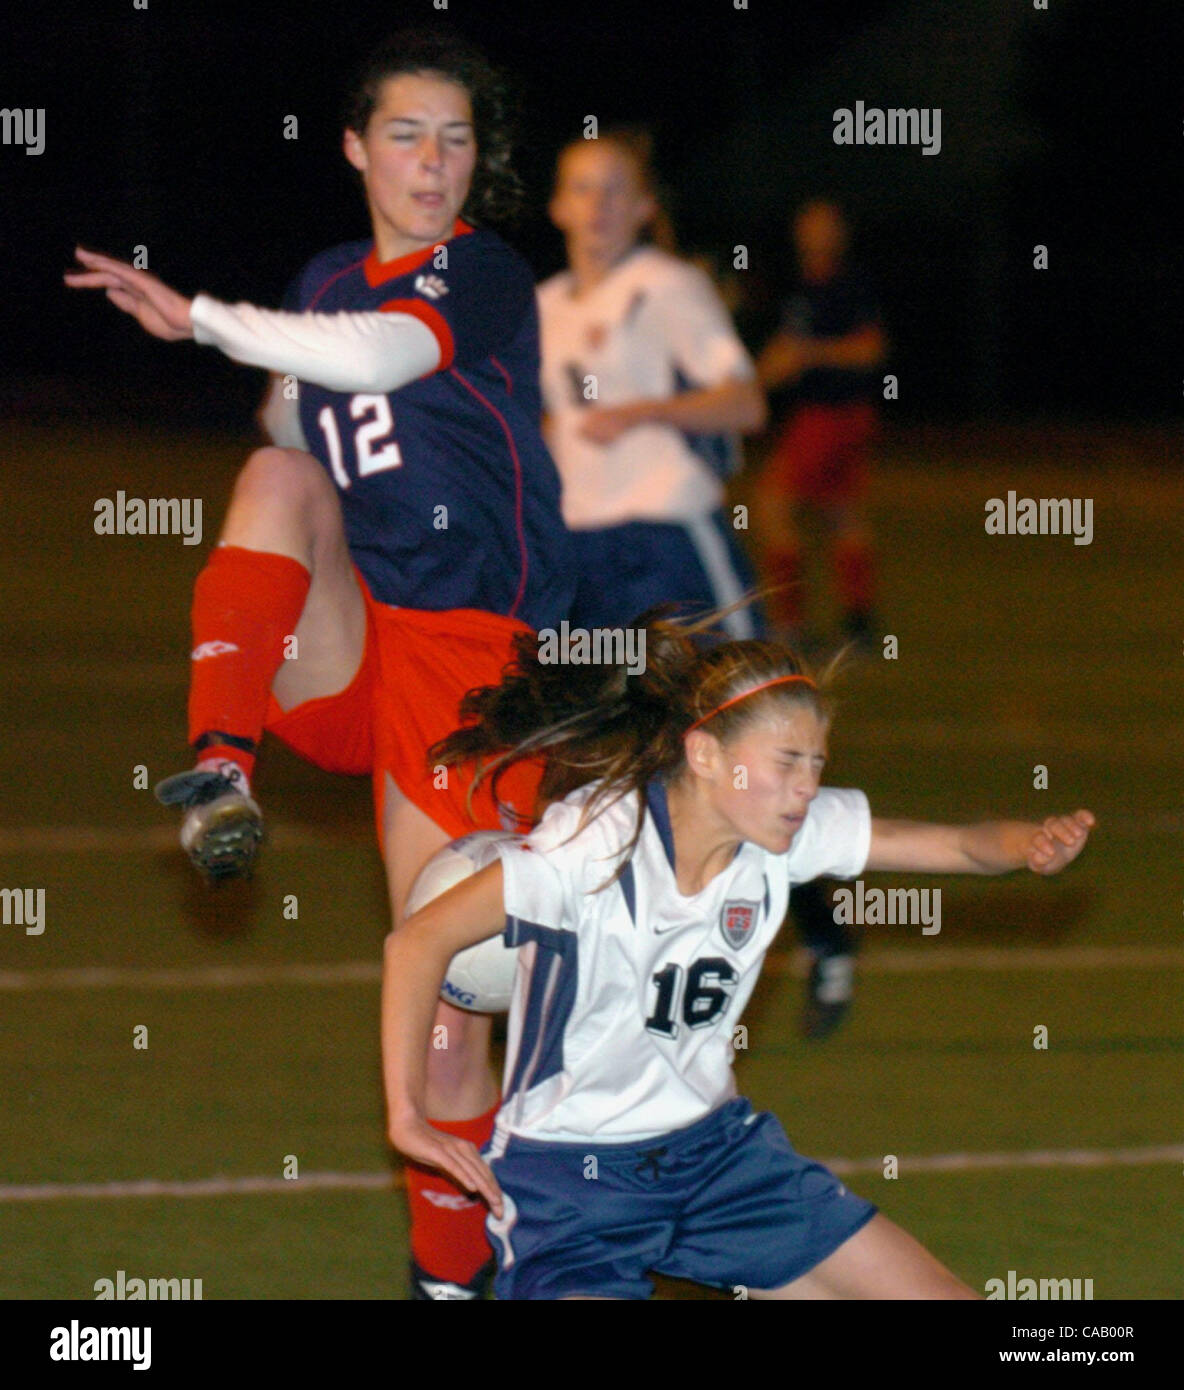 campolindo stock photos campolindo stock images alamy l to r natalie russell of campolindo high and kelsey borgeson of dublin high